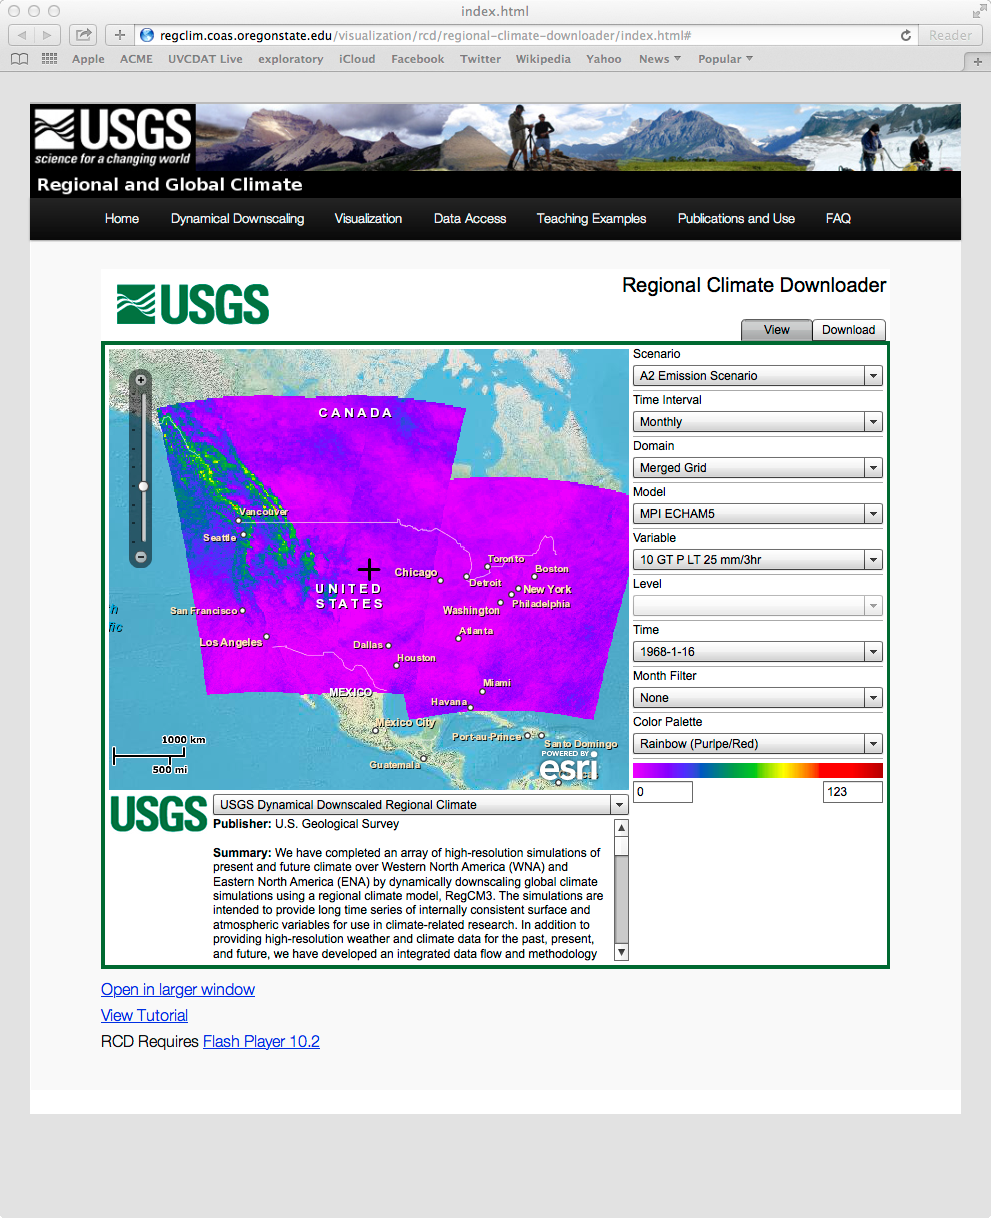 USGS Page